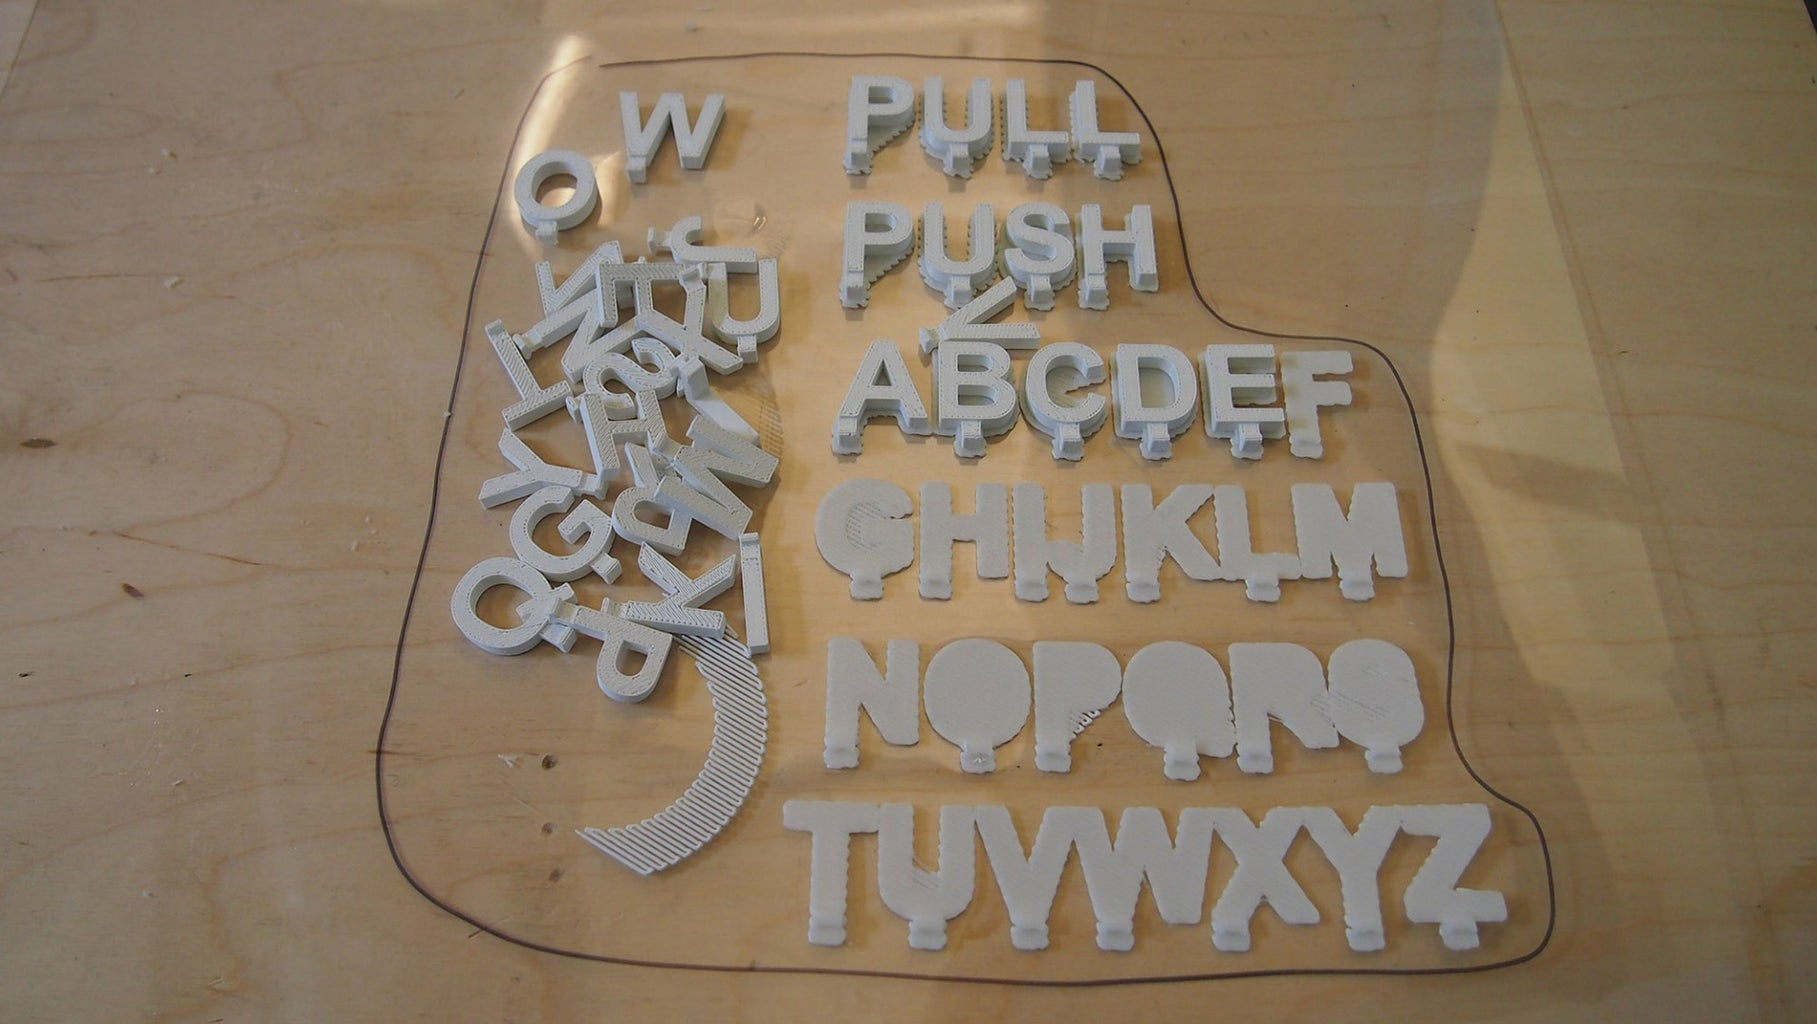 Attempt #2 - 3D Print the Letters in the Fortus